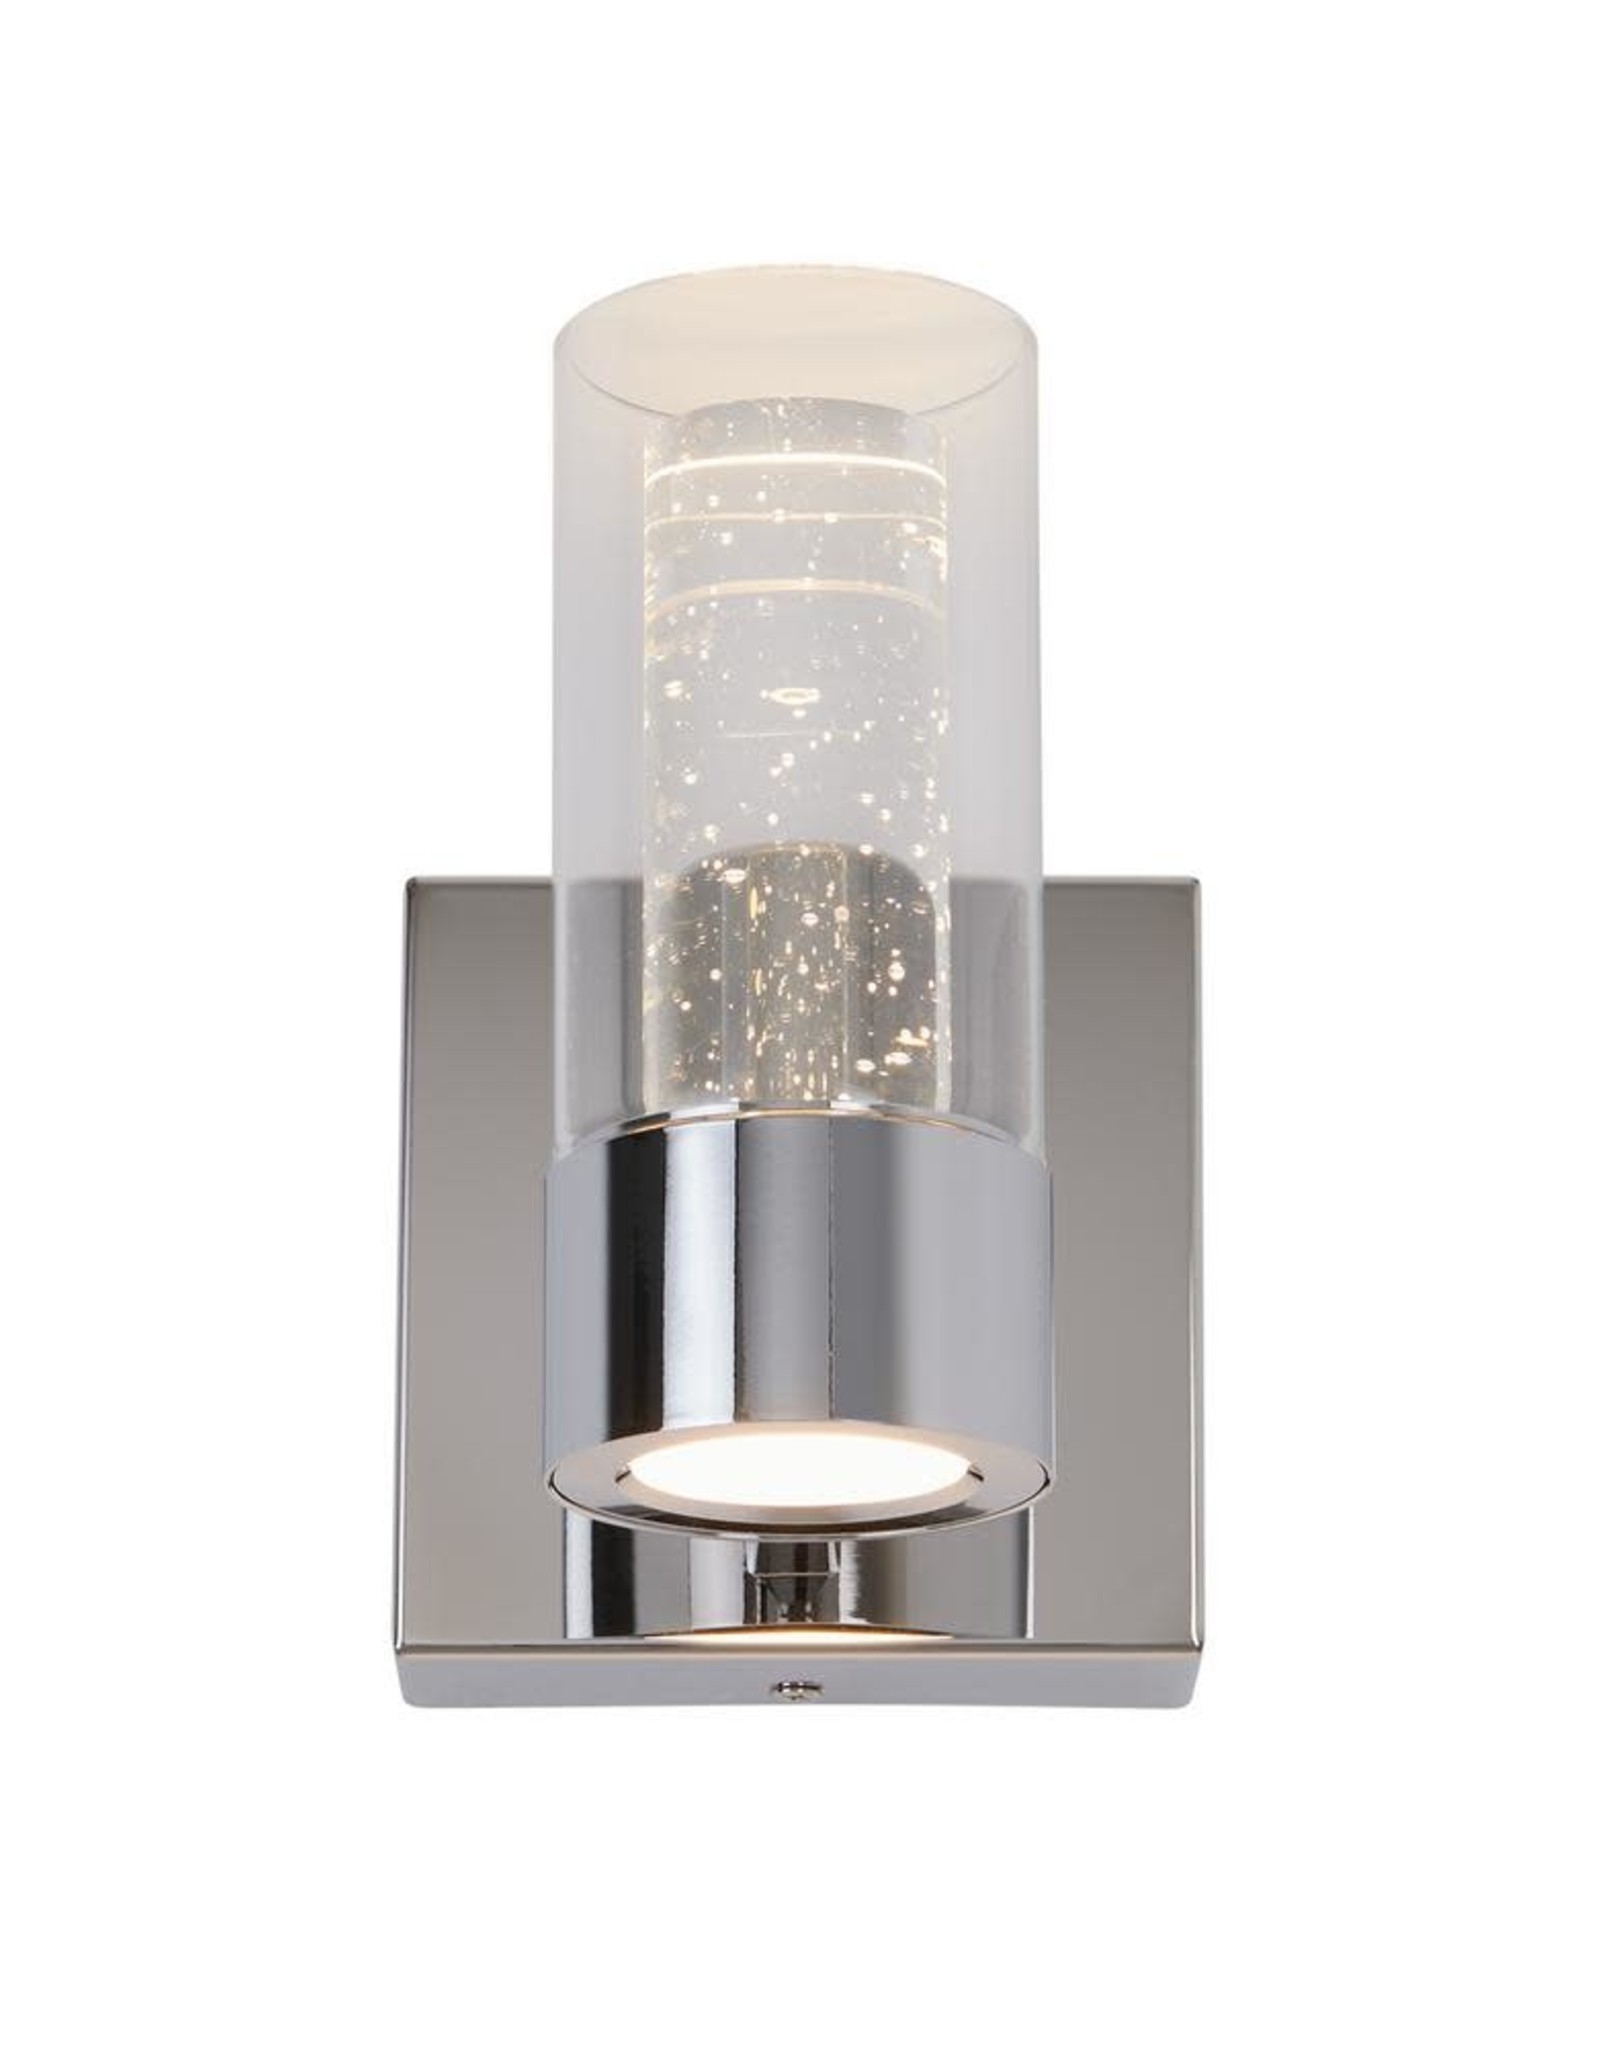 ARTIKA FOR LIVING INC Essence 4.3 in. Chrome LED Sconce with Bubble Glass